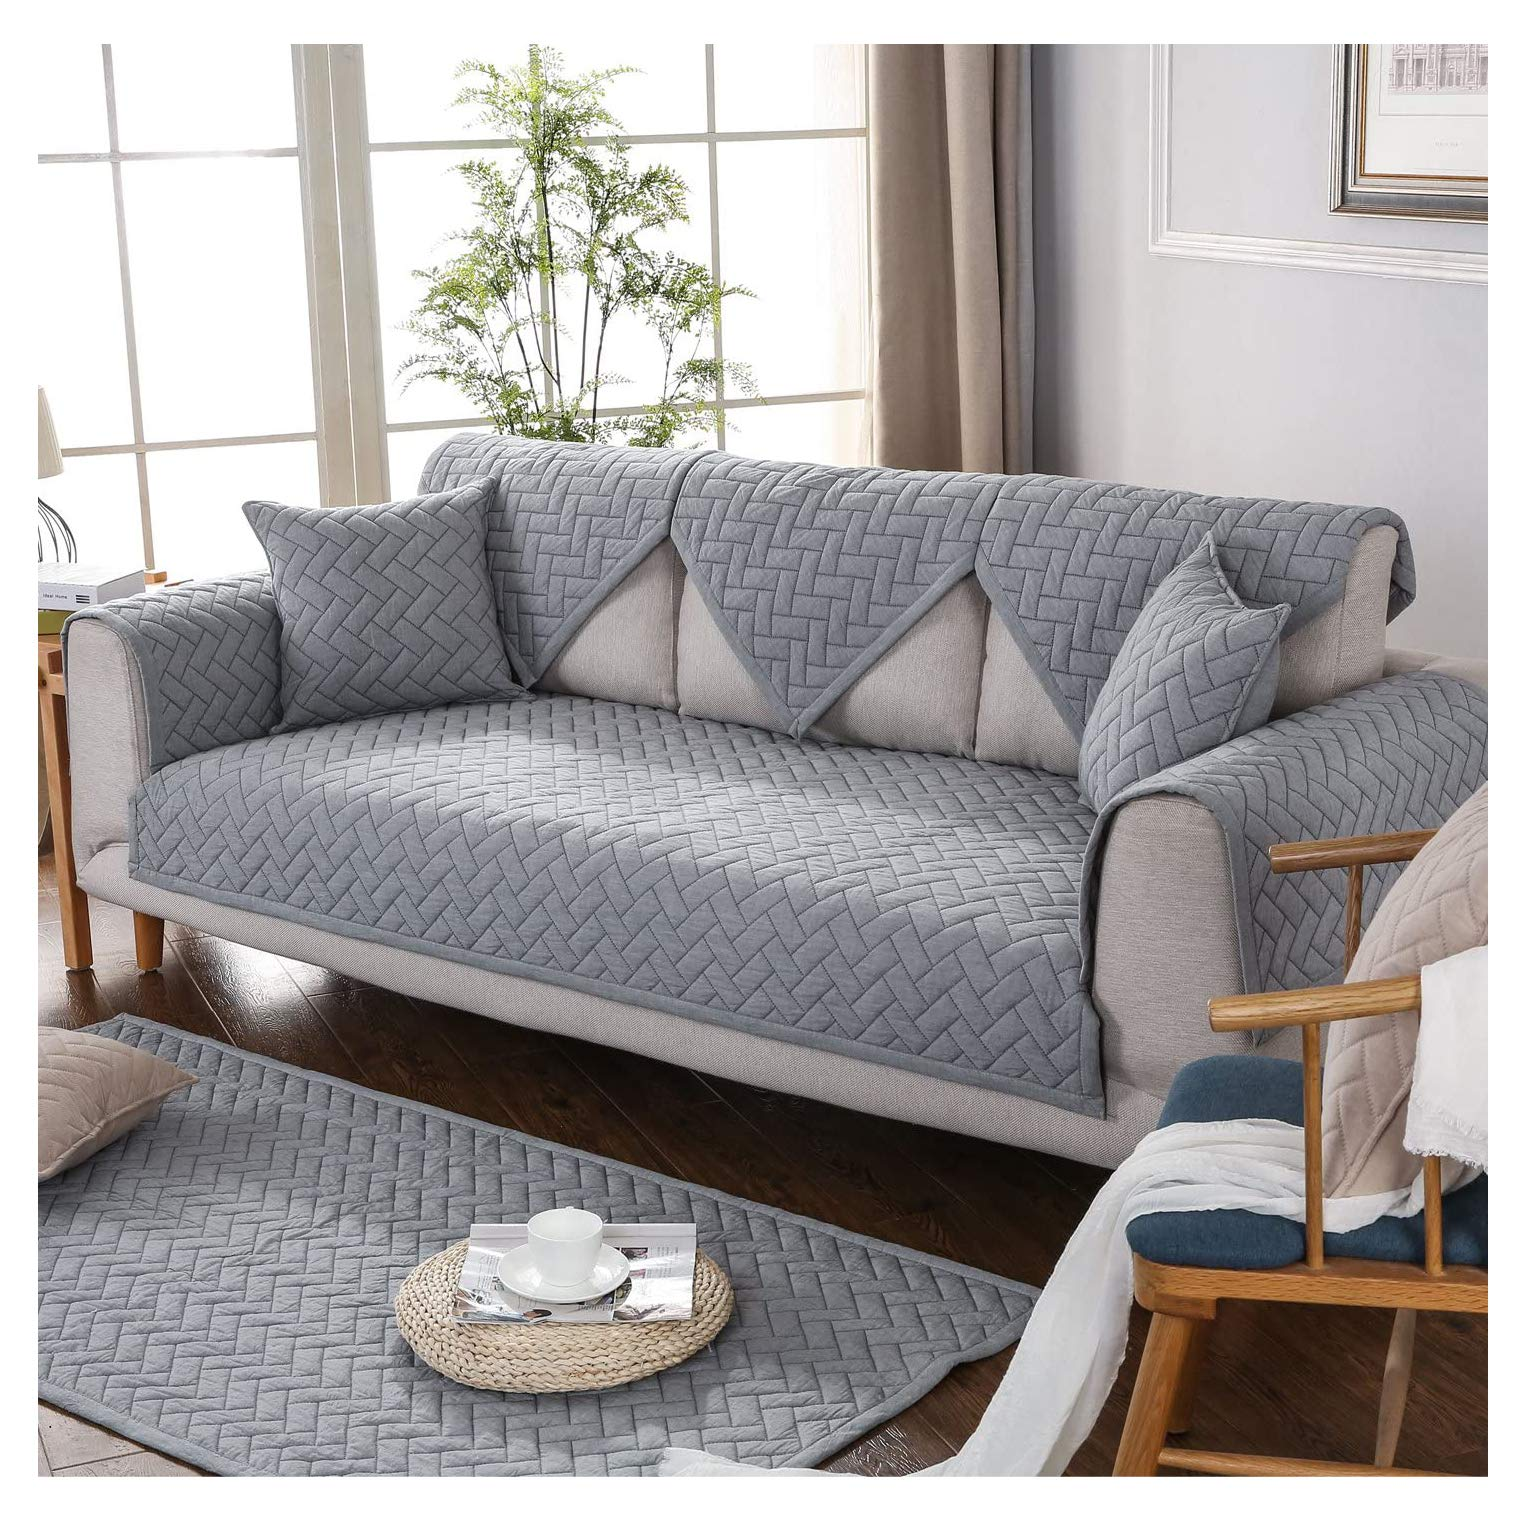 """GIANCO FERRO Sectional Sofa Slipcover Throw Covers Furniture Protector for Seat Multi-Size Soft Quilted Couch Covers for Pets Kids Gray,36""""x36"""""""